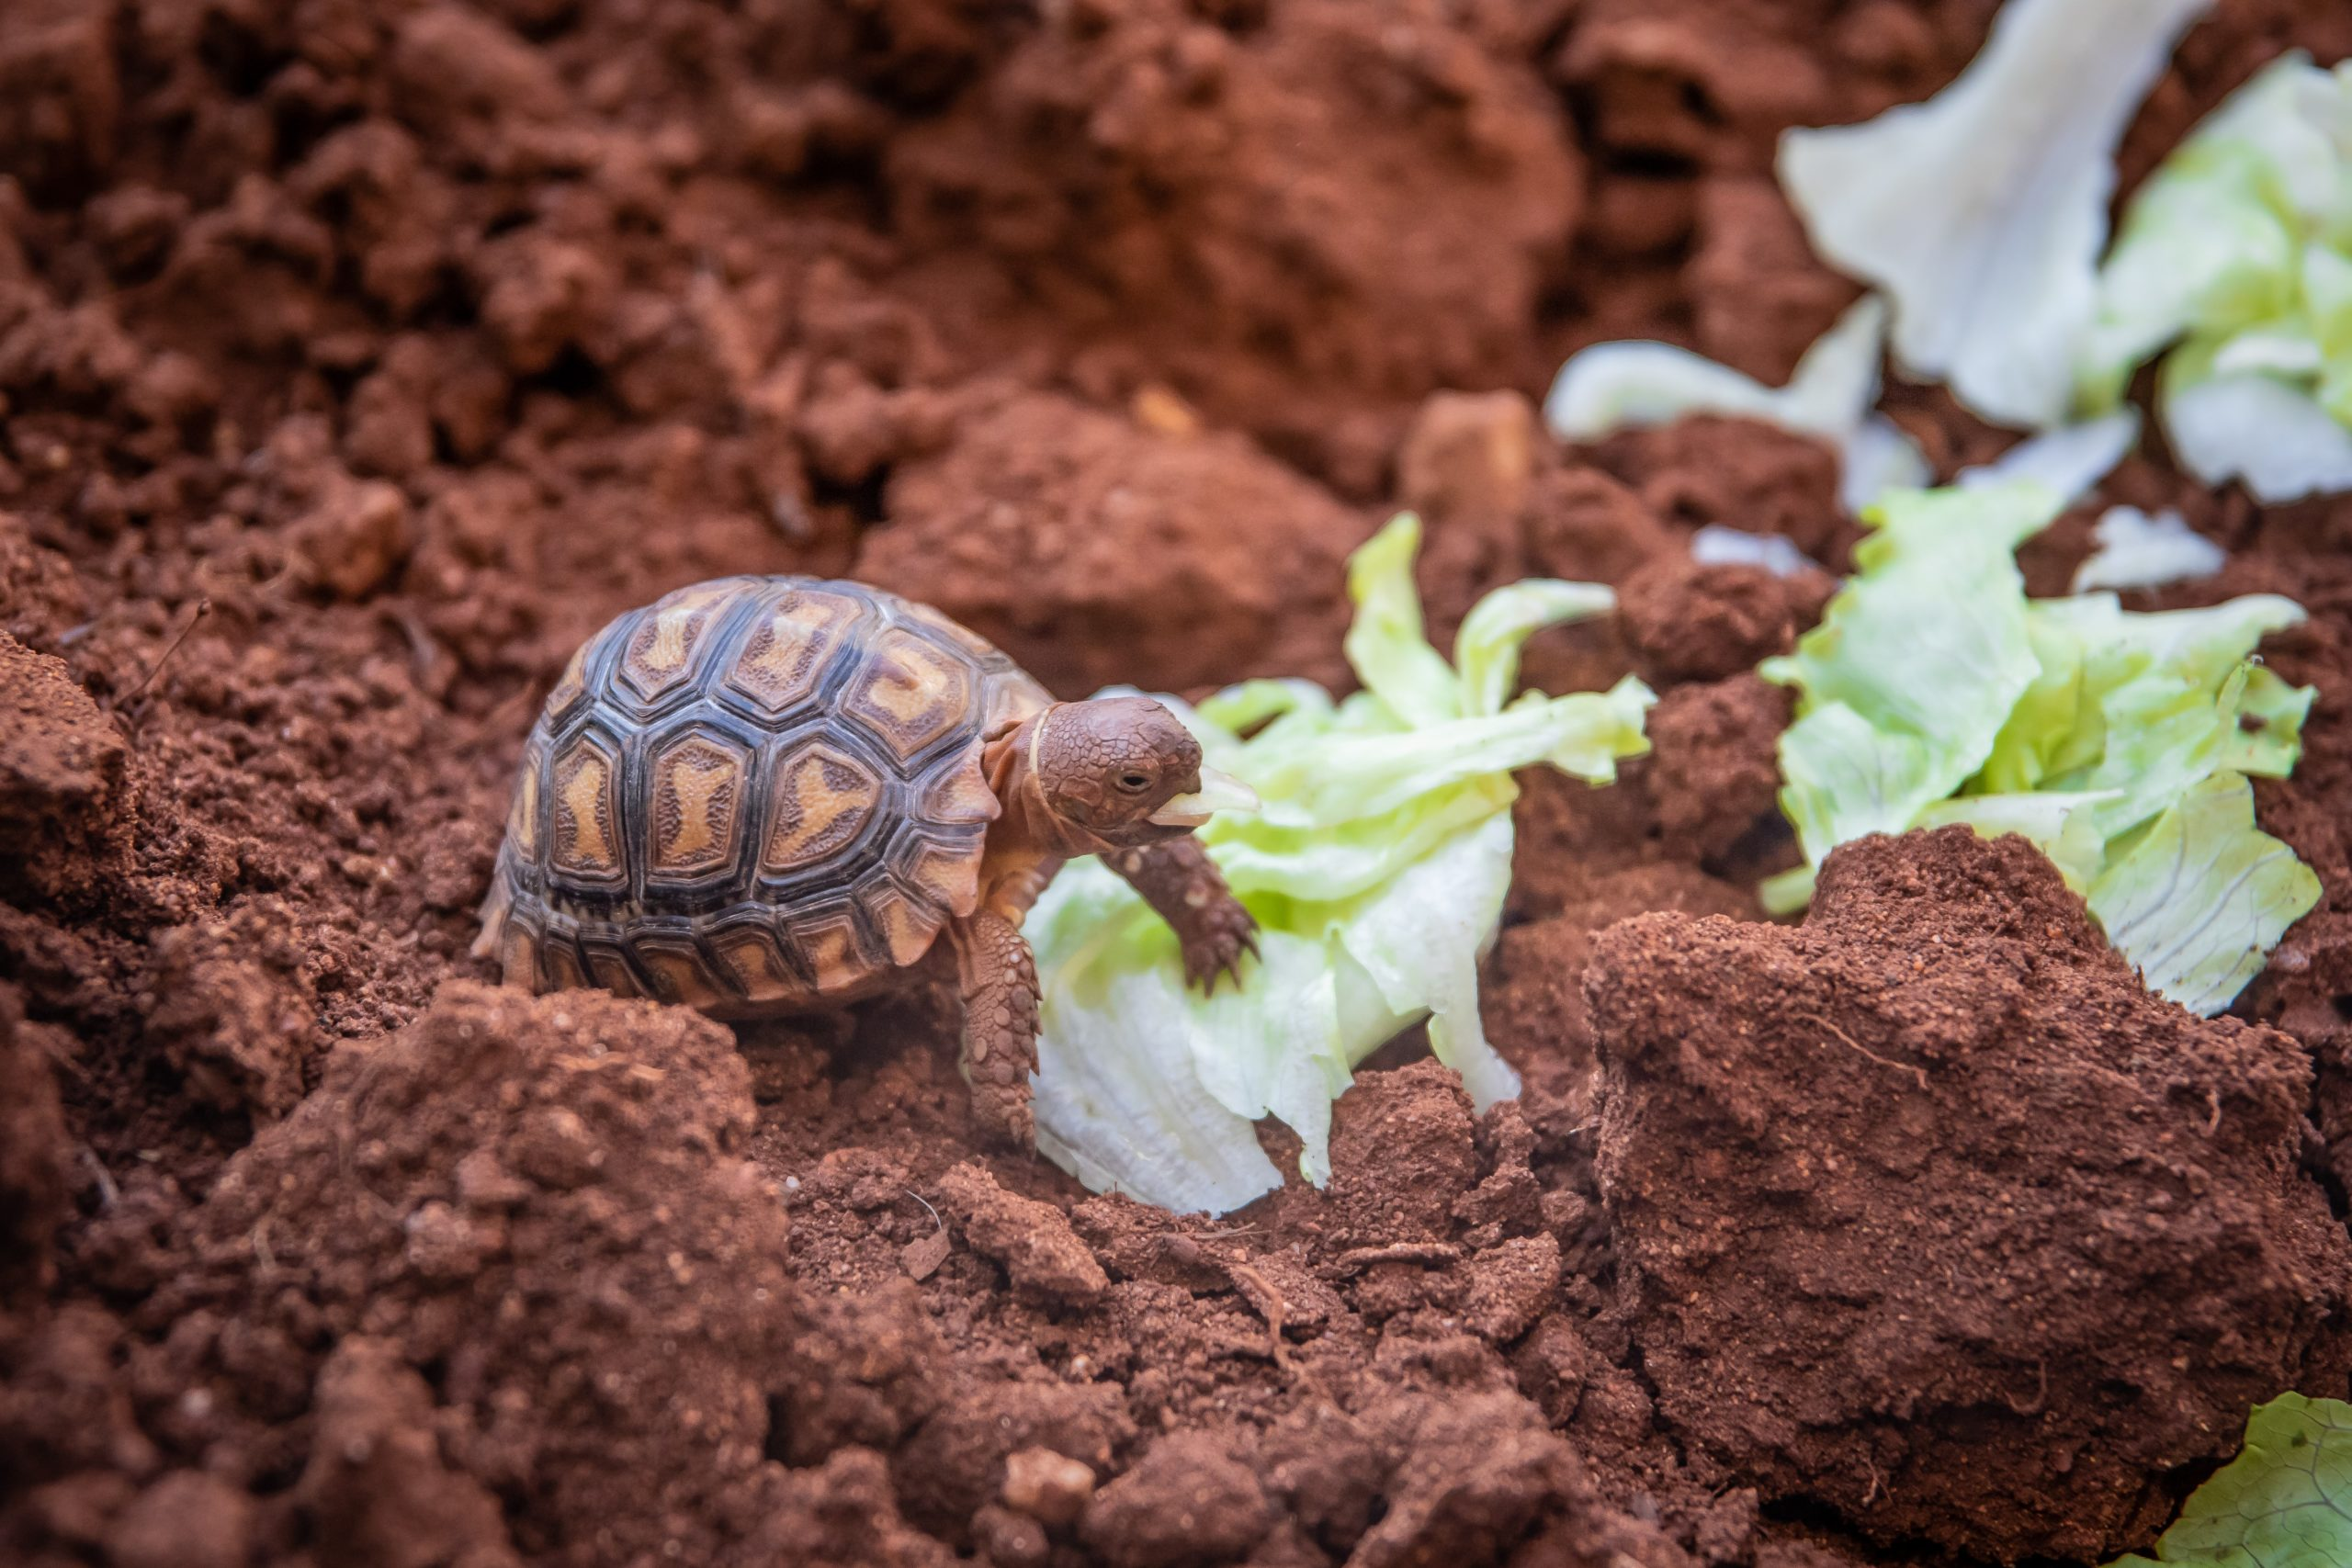 how to take care of a baby turtle